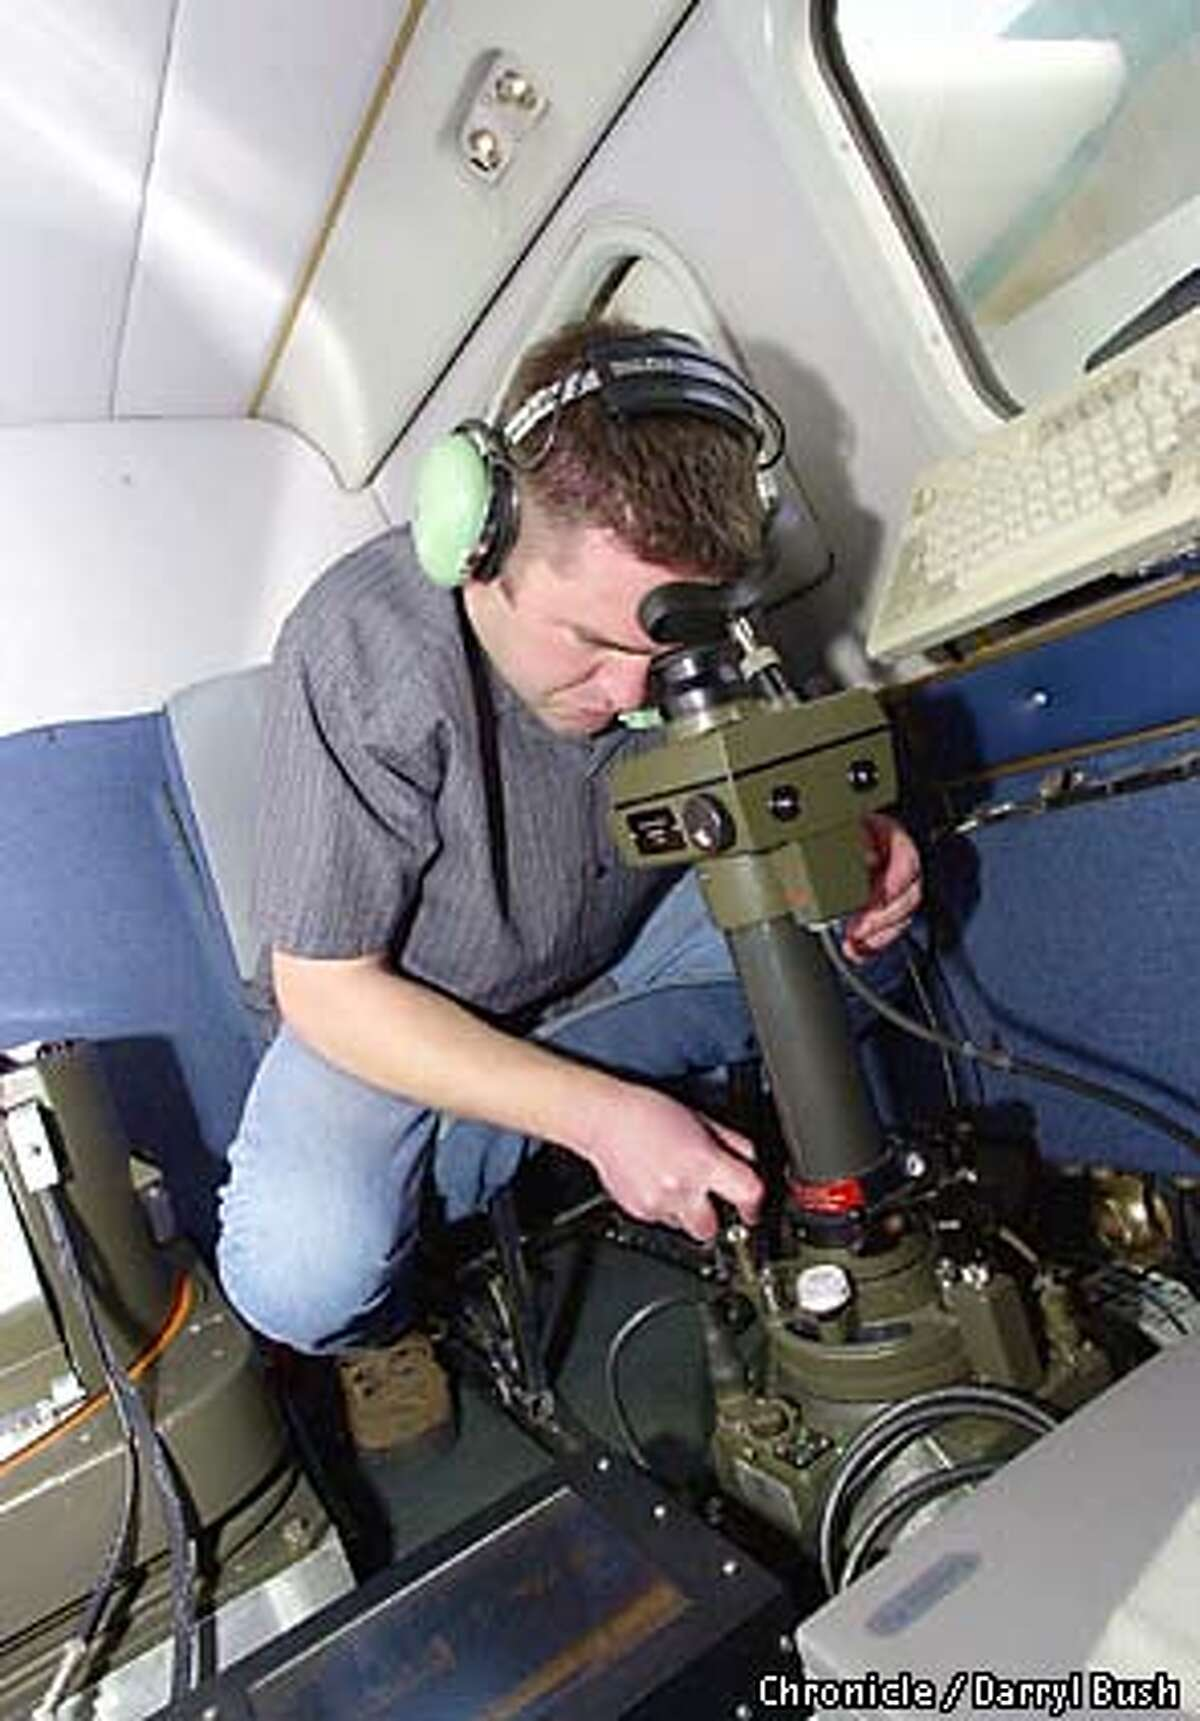 METHODB-C-16FEB03-MT-DB Aerial photographer Erik Sanders of Air Flight Service Co., adjusts camera positioning through a scope which looks down (giving him the camera's line of sight), on the Leica RC-30 aerial mapping camera during flight to photograph the peace march occuring in San Francisco. Chronicle Photo by Darryl Bush